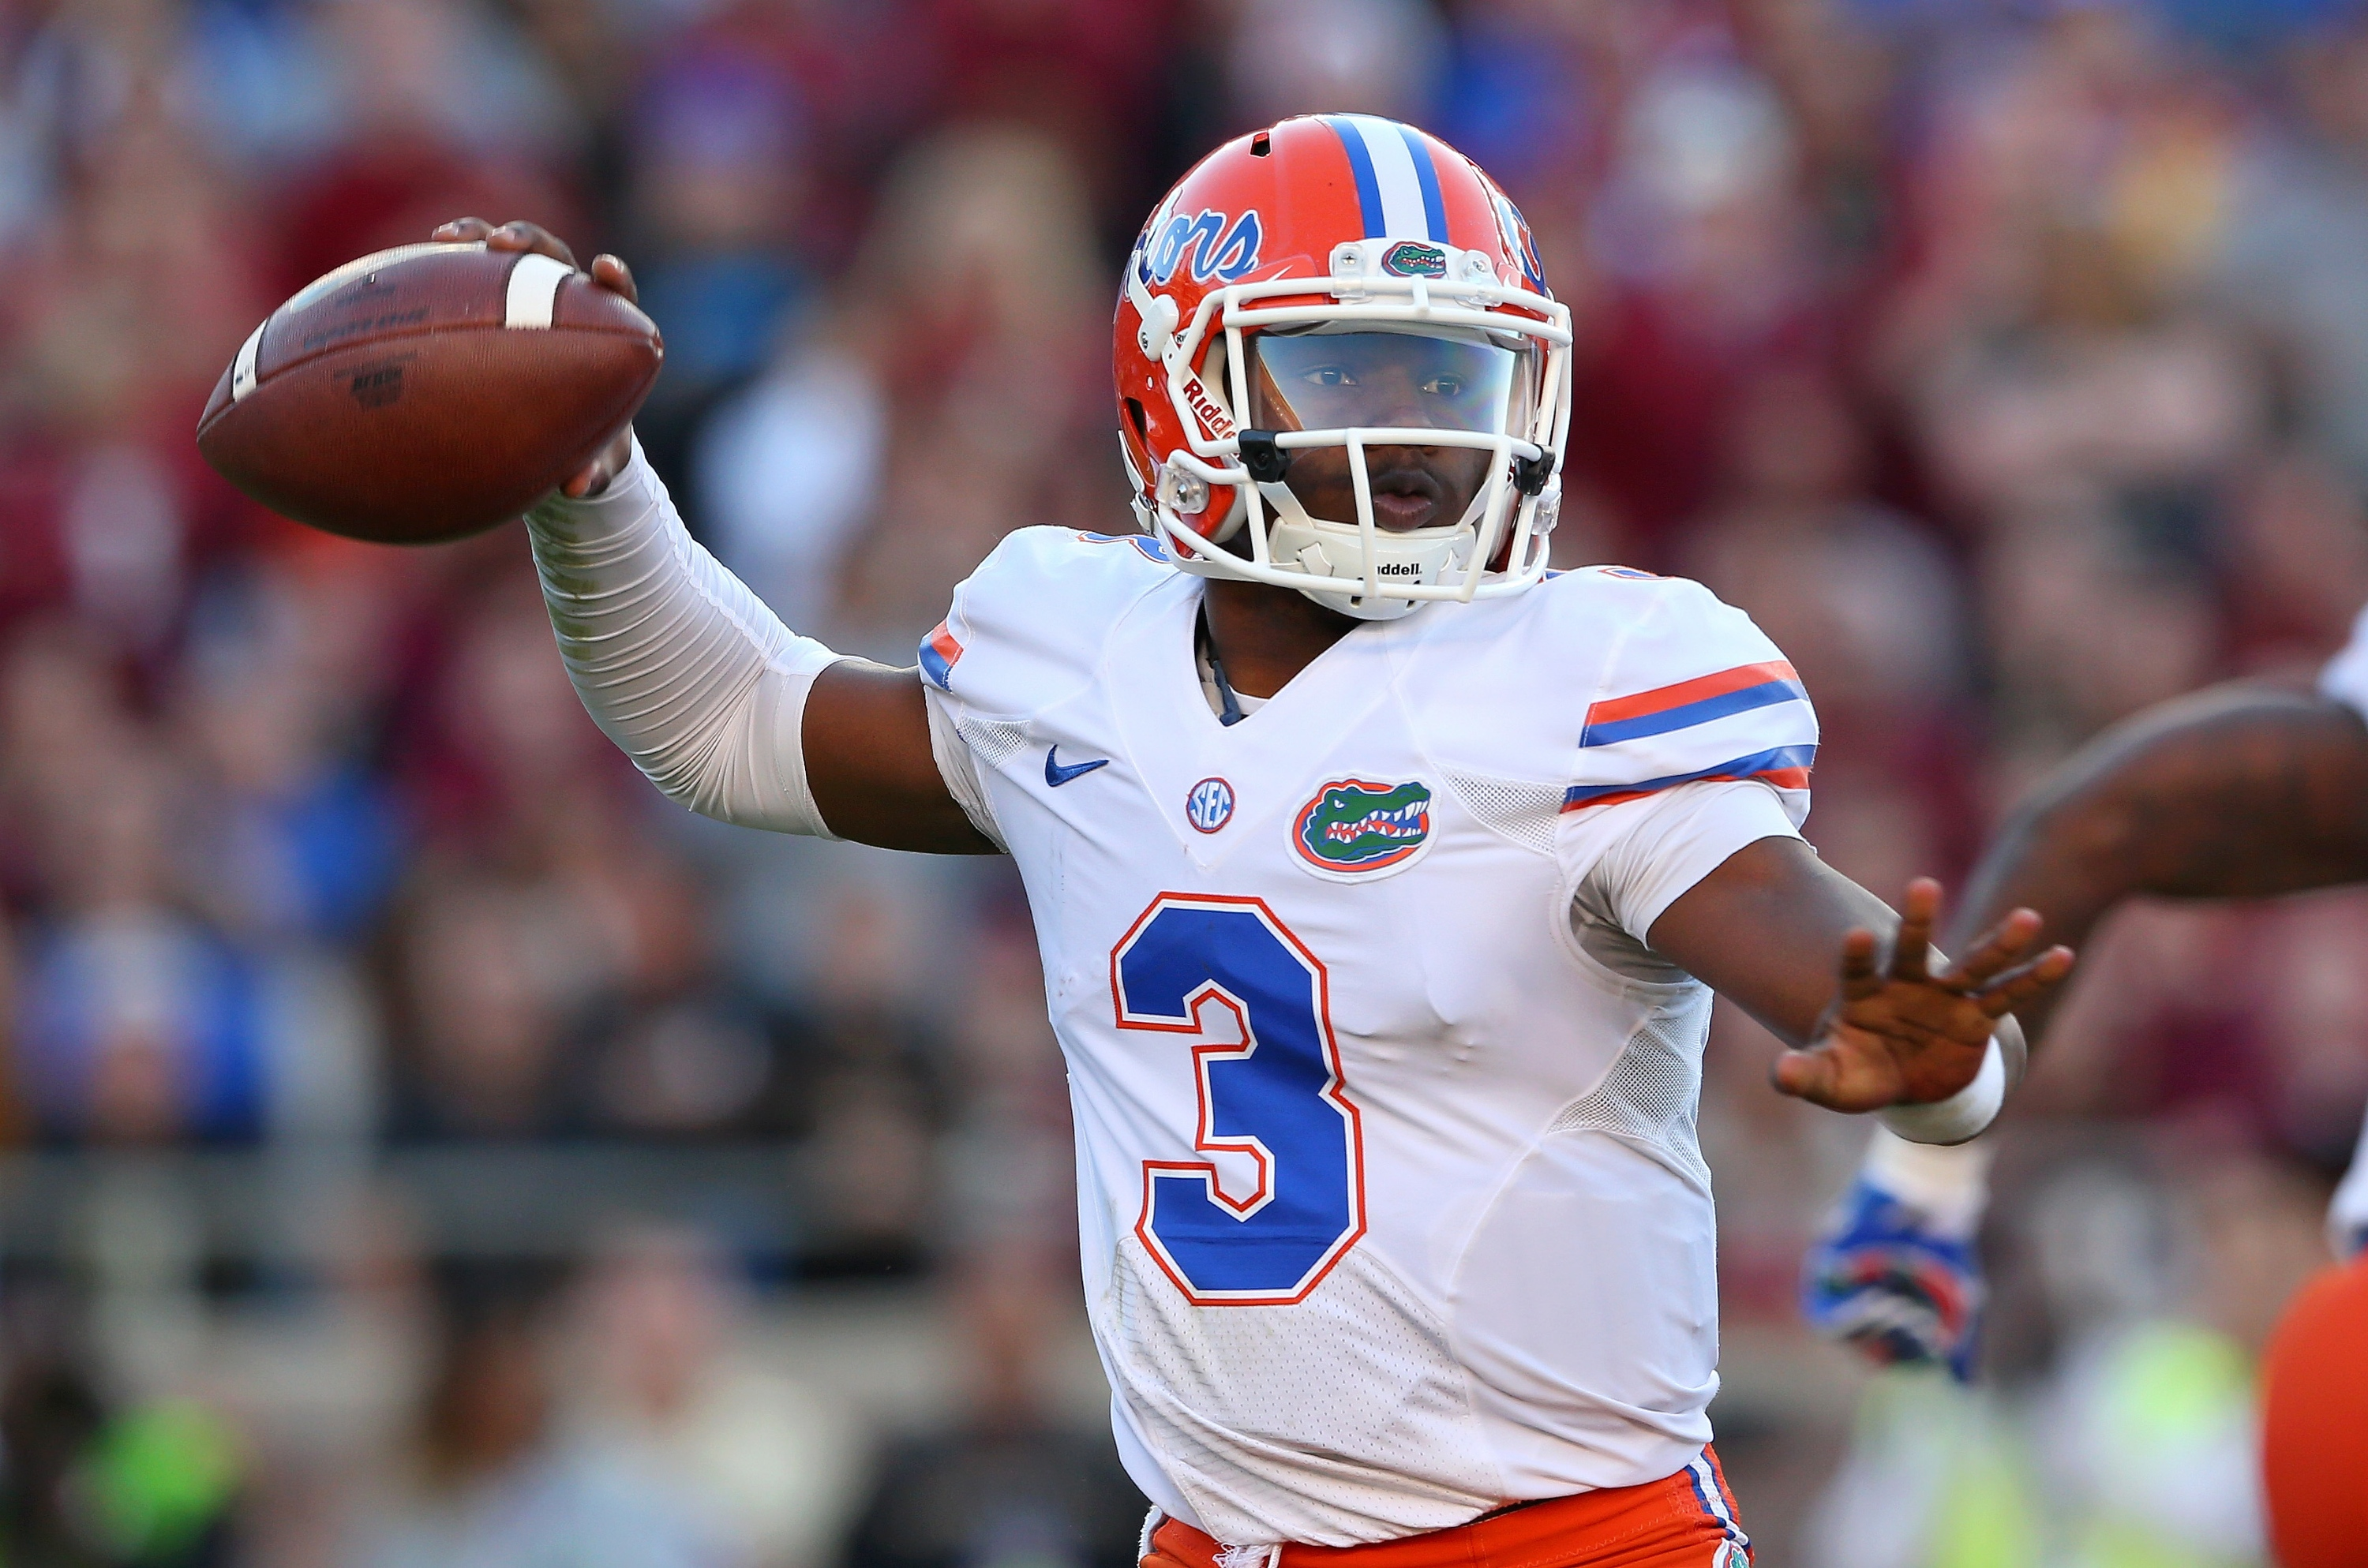 TALLAHASSEE, FL - NOVEMBER 29: Treon Harris #3 of the Florida Gators passes during a game against the Florida State Seminoles at Doak Campbell Stadium on November 29, 2014 in Tallahassee, Florida. (Photo by Mike Ehrmann/Getty Images)